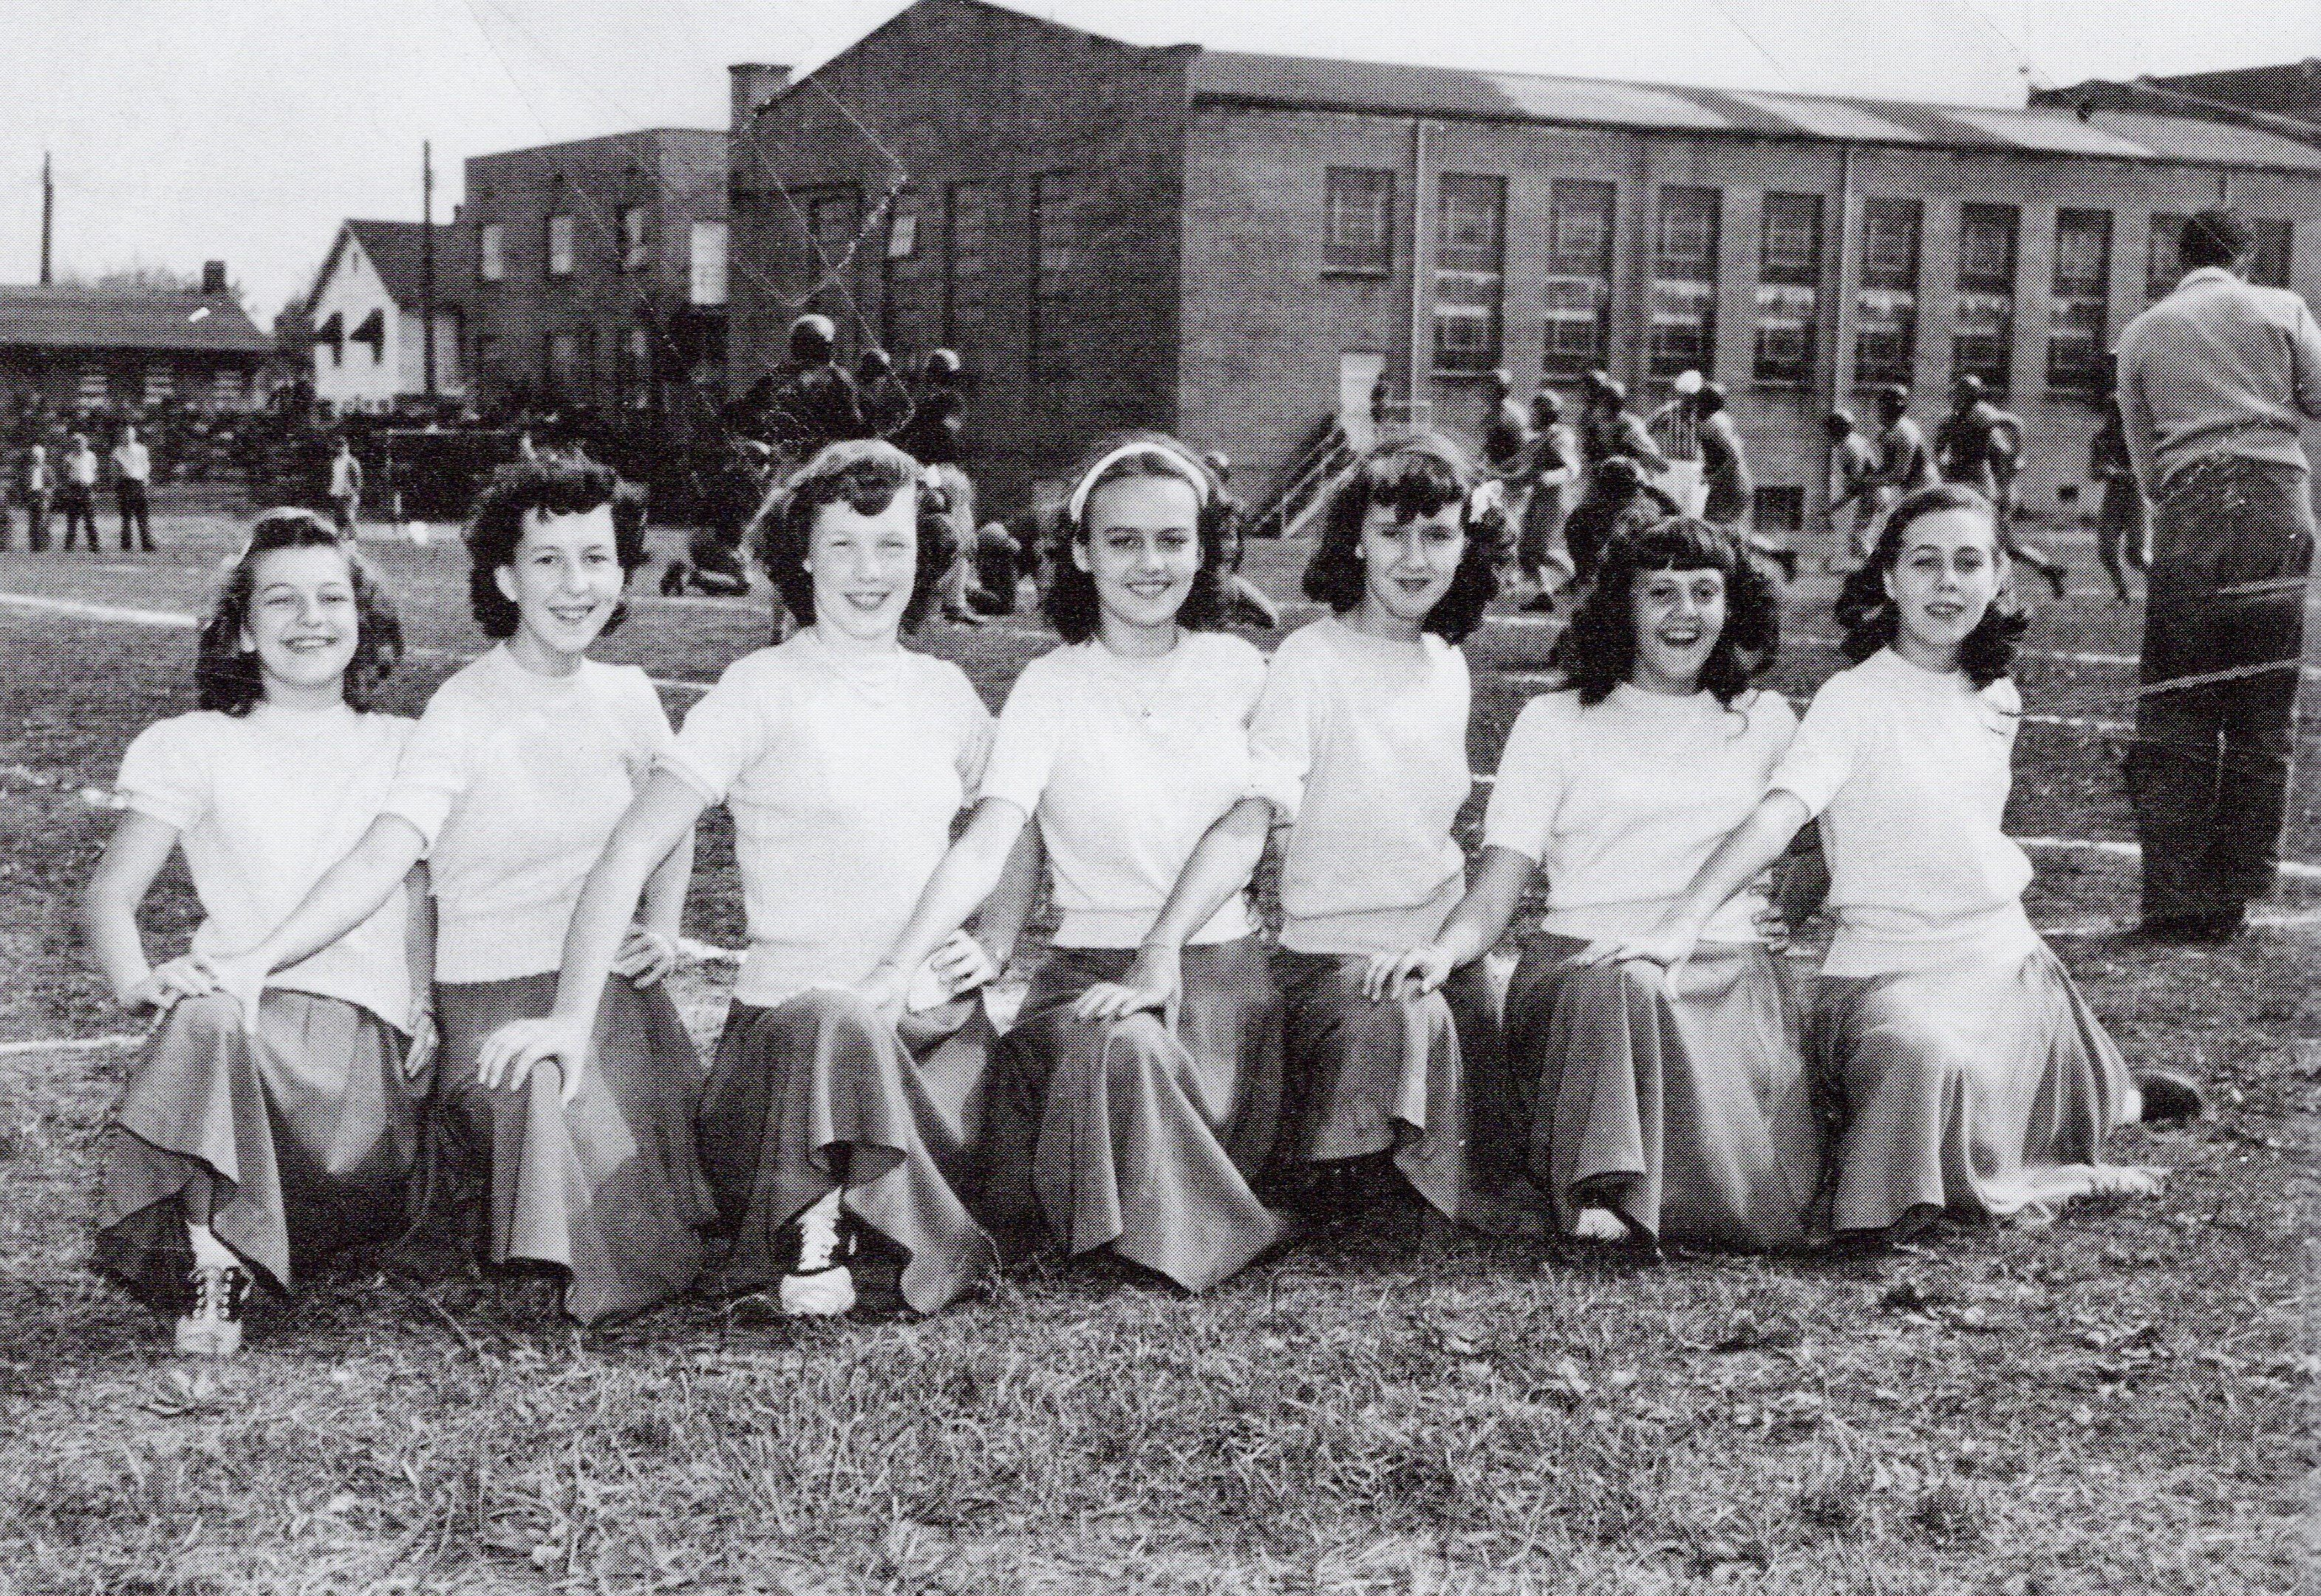 South Charleston Junior High School cheerleaders on the field in the 1940s, soon after the field was completed. Courtesy of South Charleston Museum.